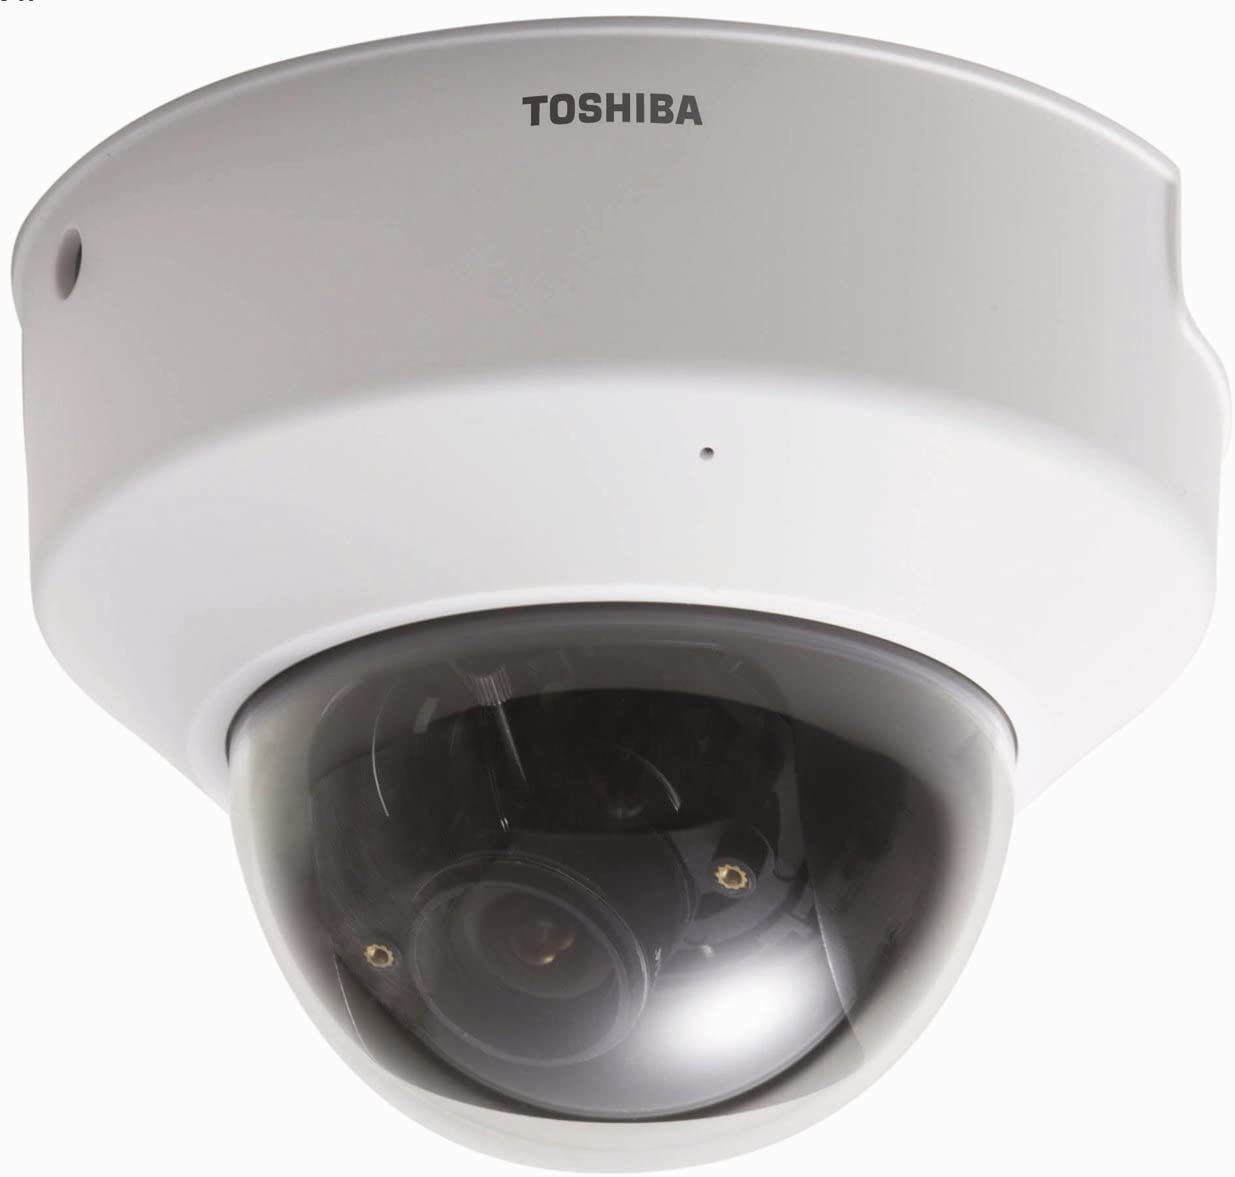 Toshiba IK-WD01A IP Network Mini-dome Camera, PoE, 640×480, 2-4mm Lens